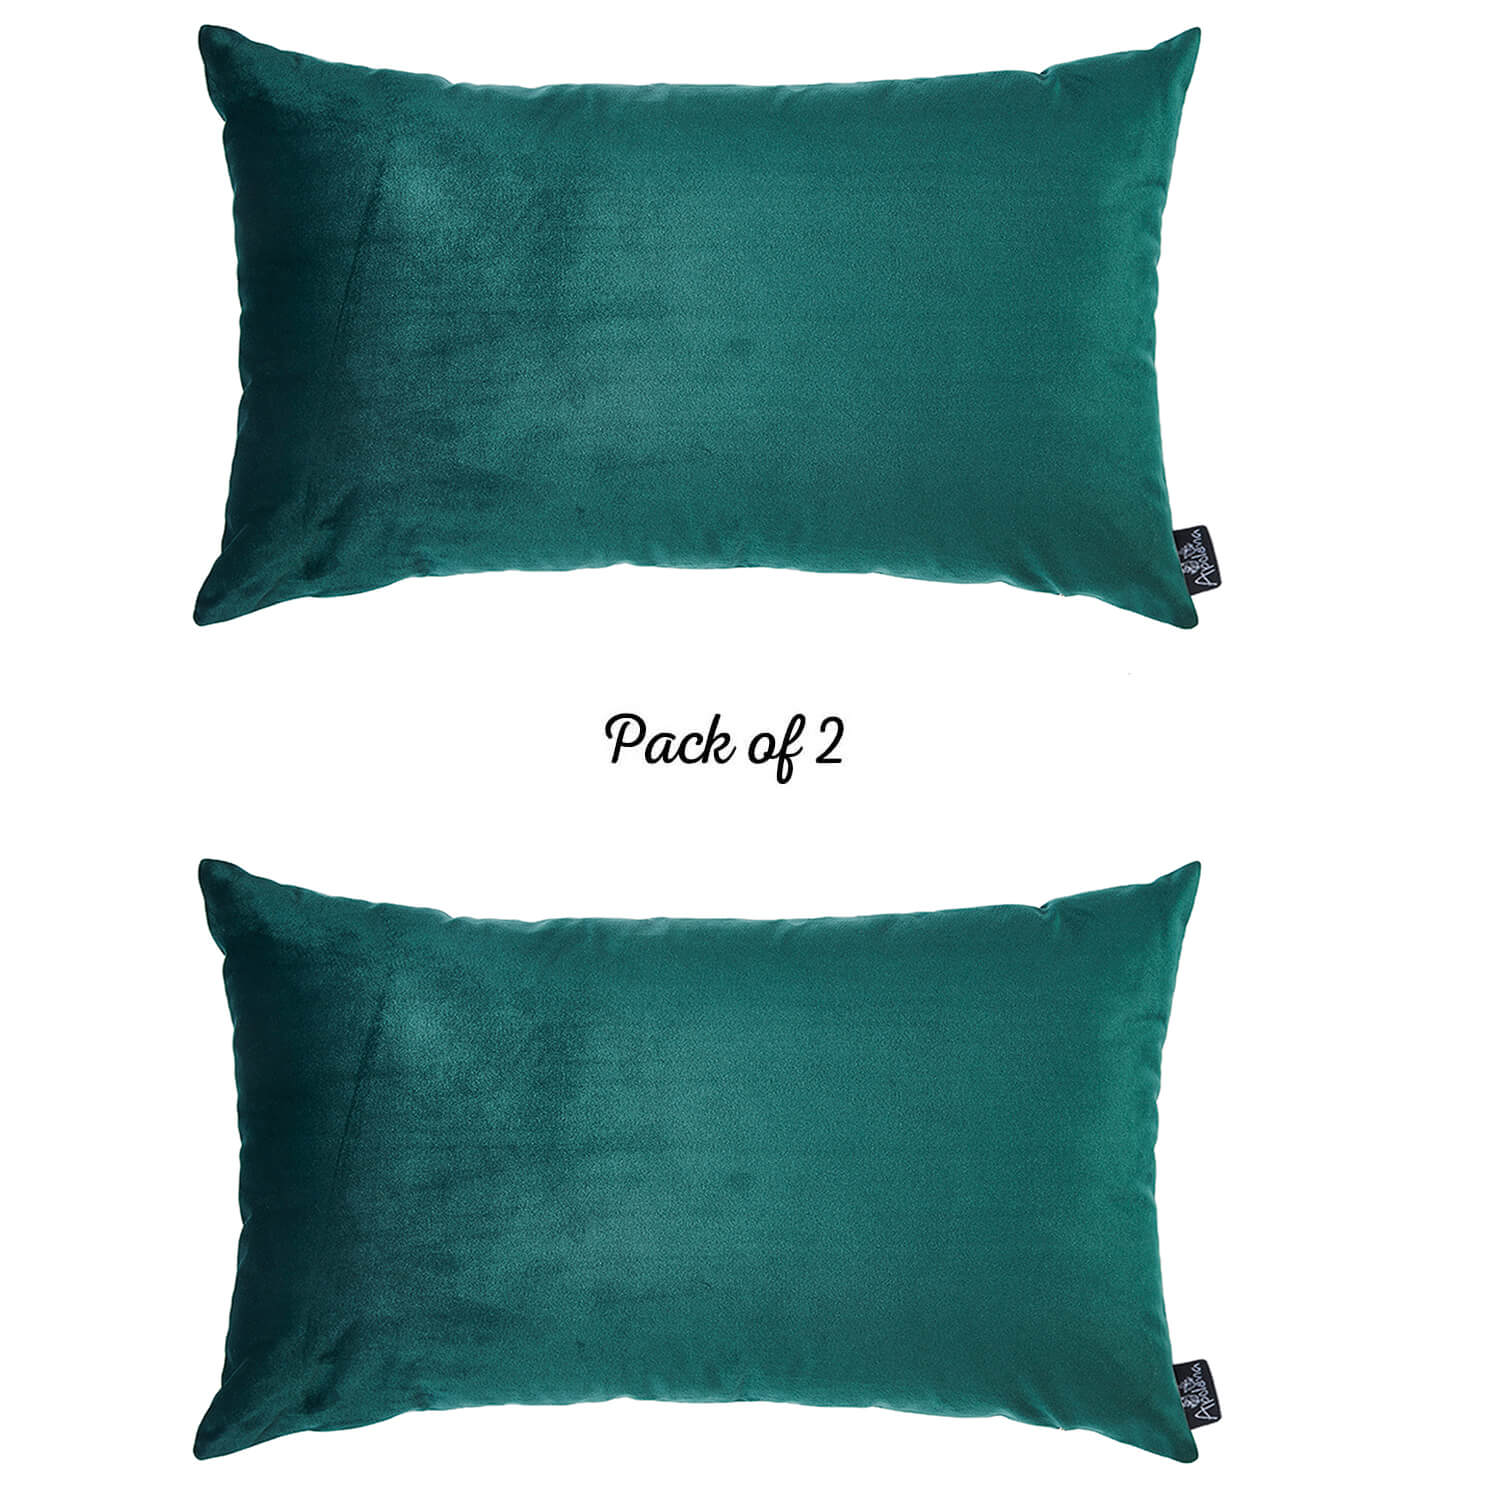 Velvet Dark Emerald Green Decorative Throw Pillow Cover Home Decor 14 X 21 2 Pcs In Set